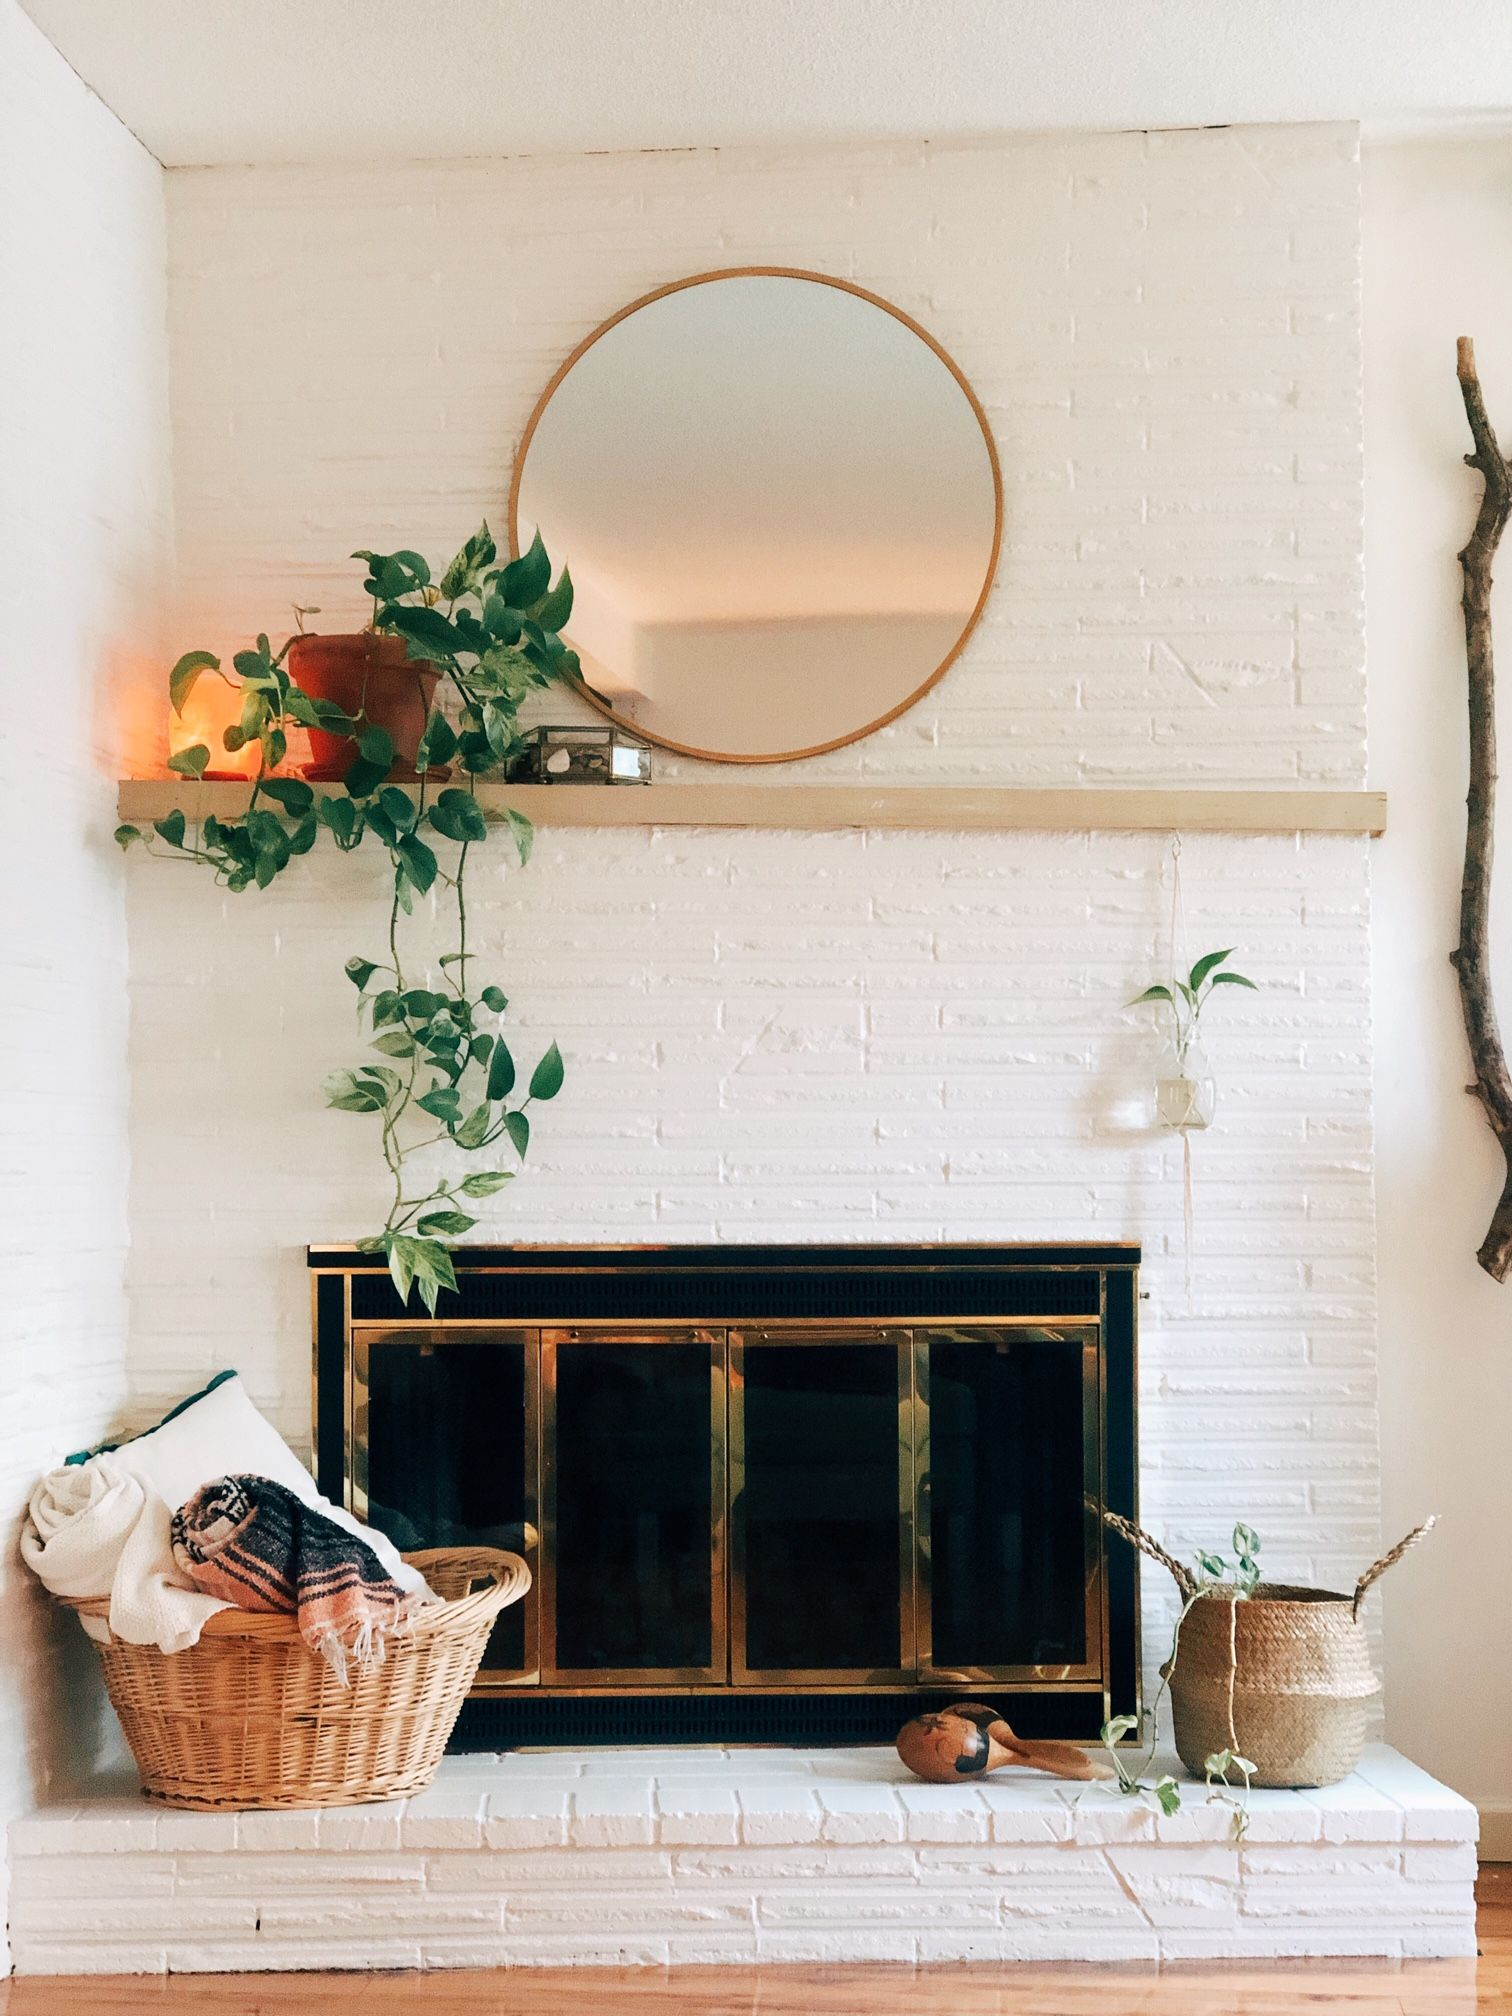 A fresh modern, cozy, boho update to this Midcentury modern white painted brick fireplace and mantle included adding a large round brass mirror, a plant, minimal mantle decor, and baskets and blankets to add texture and coziness. #whitebrickfireplace